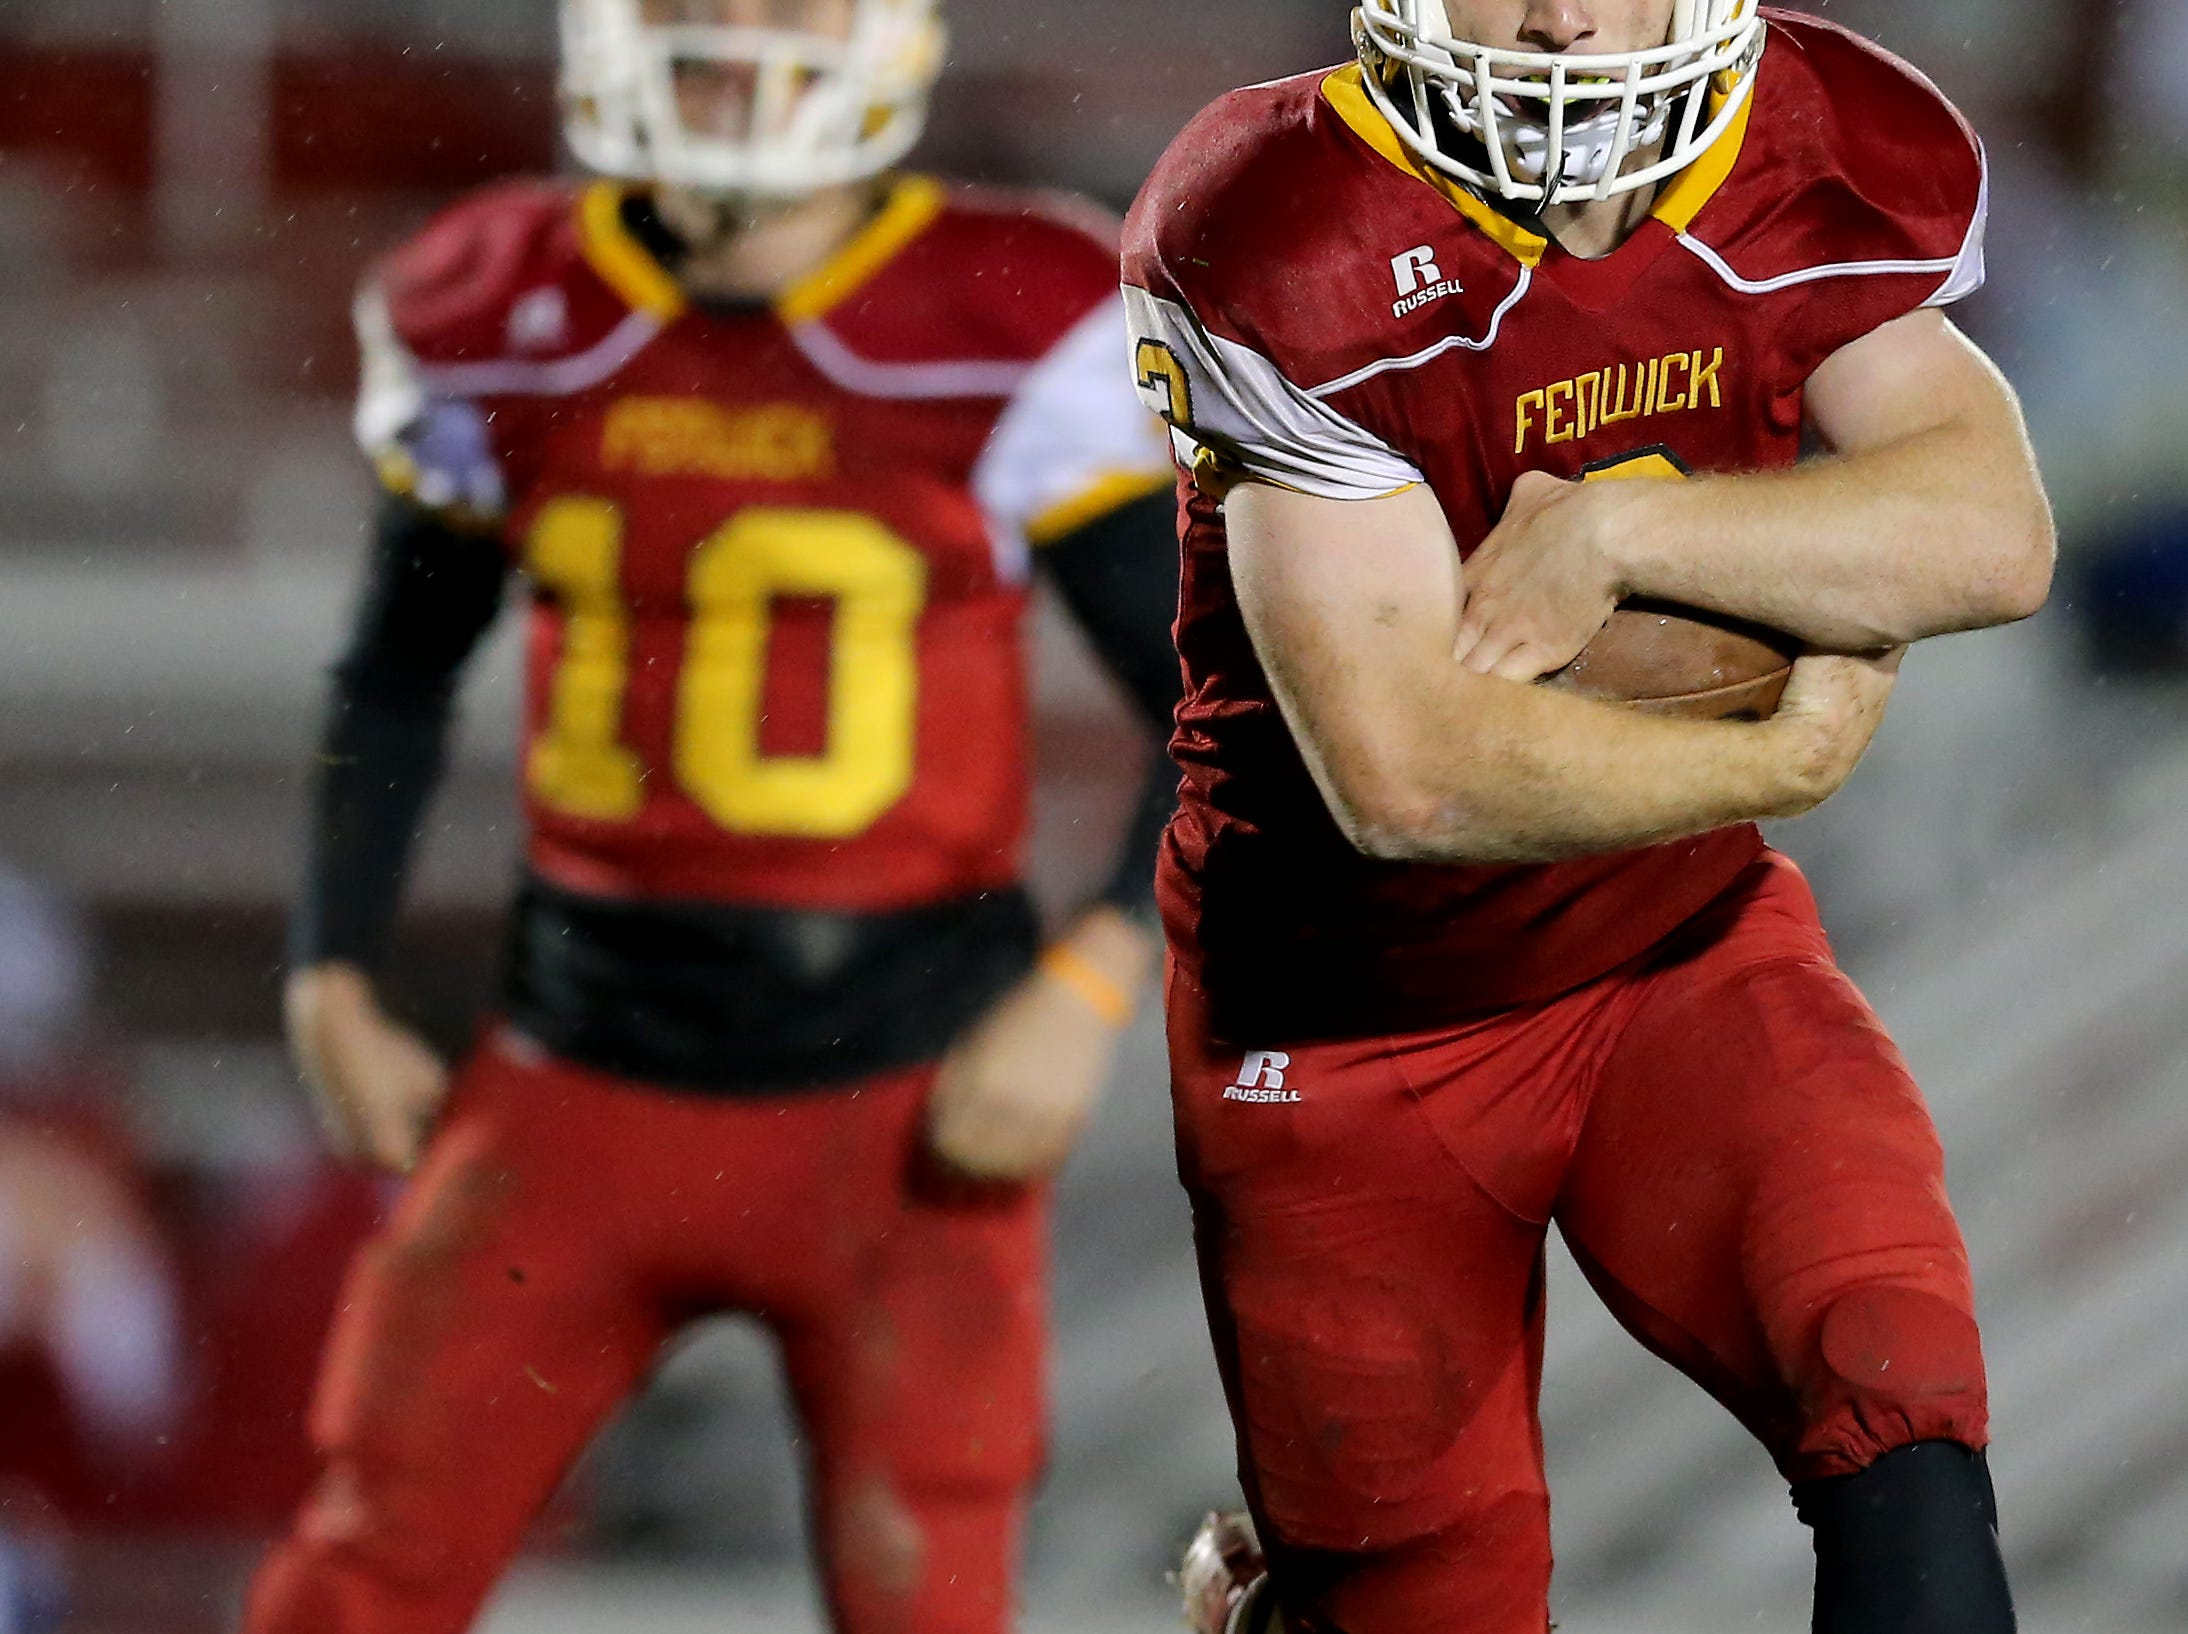 Bishop Fenwick running back Jack Fessler (3) carries the ball in the third quarter during a high school football game between Purcell Marian and Bishop Fenwick, Friday, Oct. 12, 2018, at Bishop Fenwick High School in Middletown, Ohio.